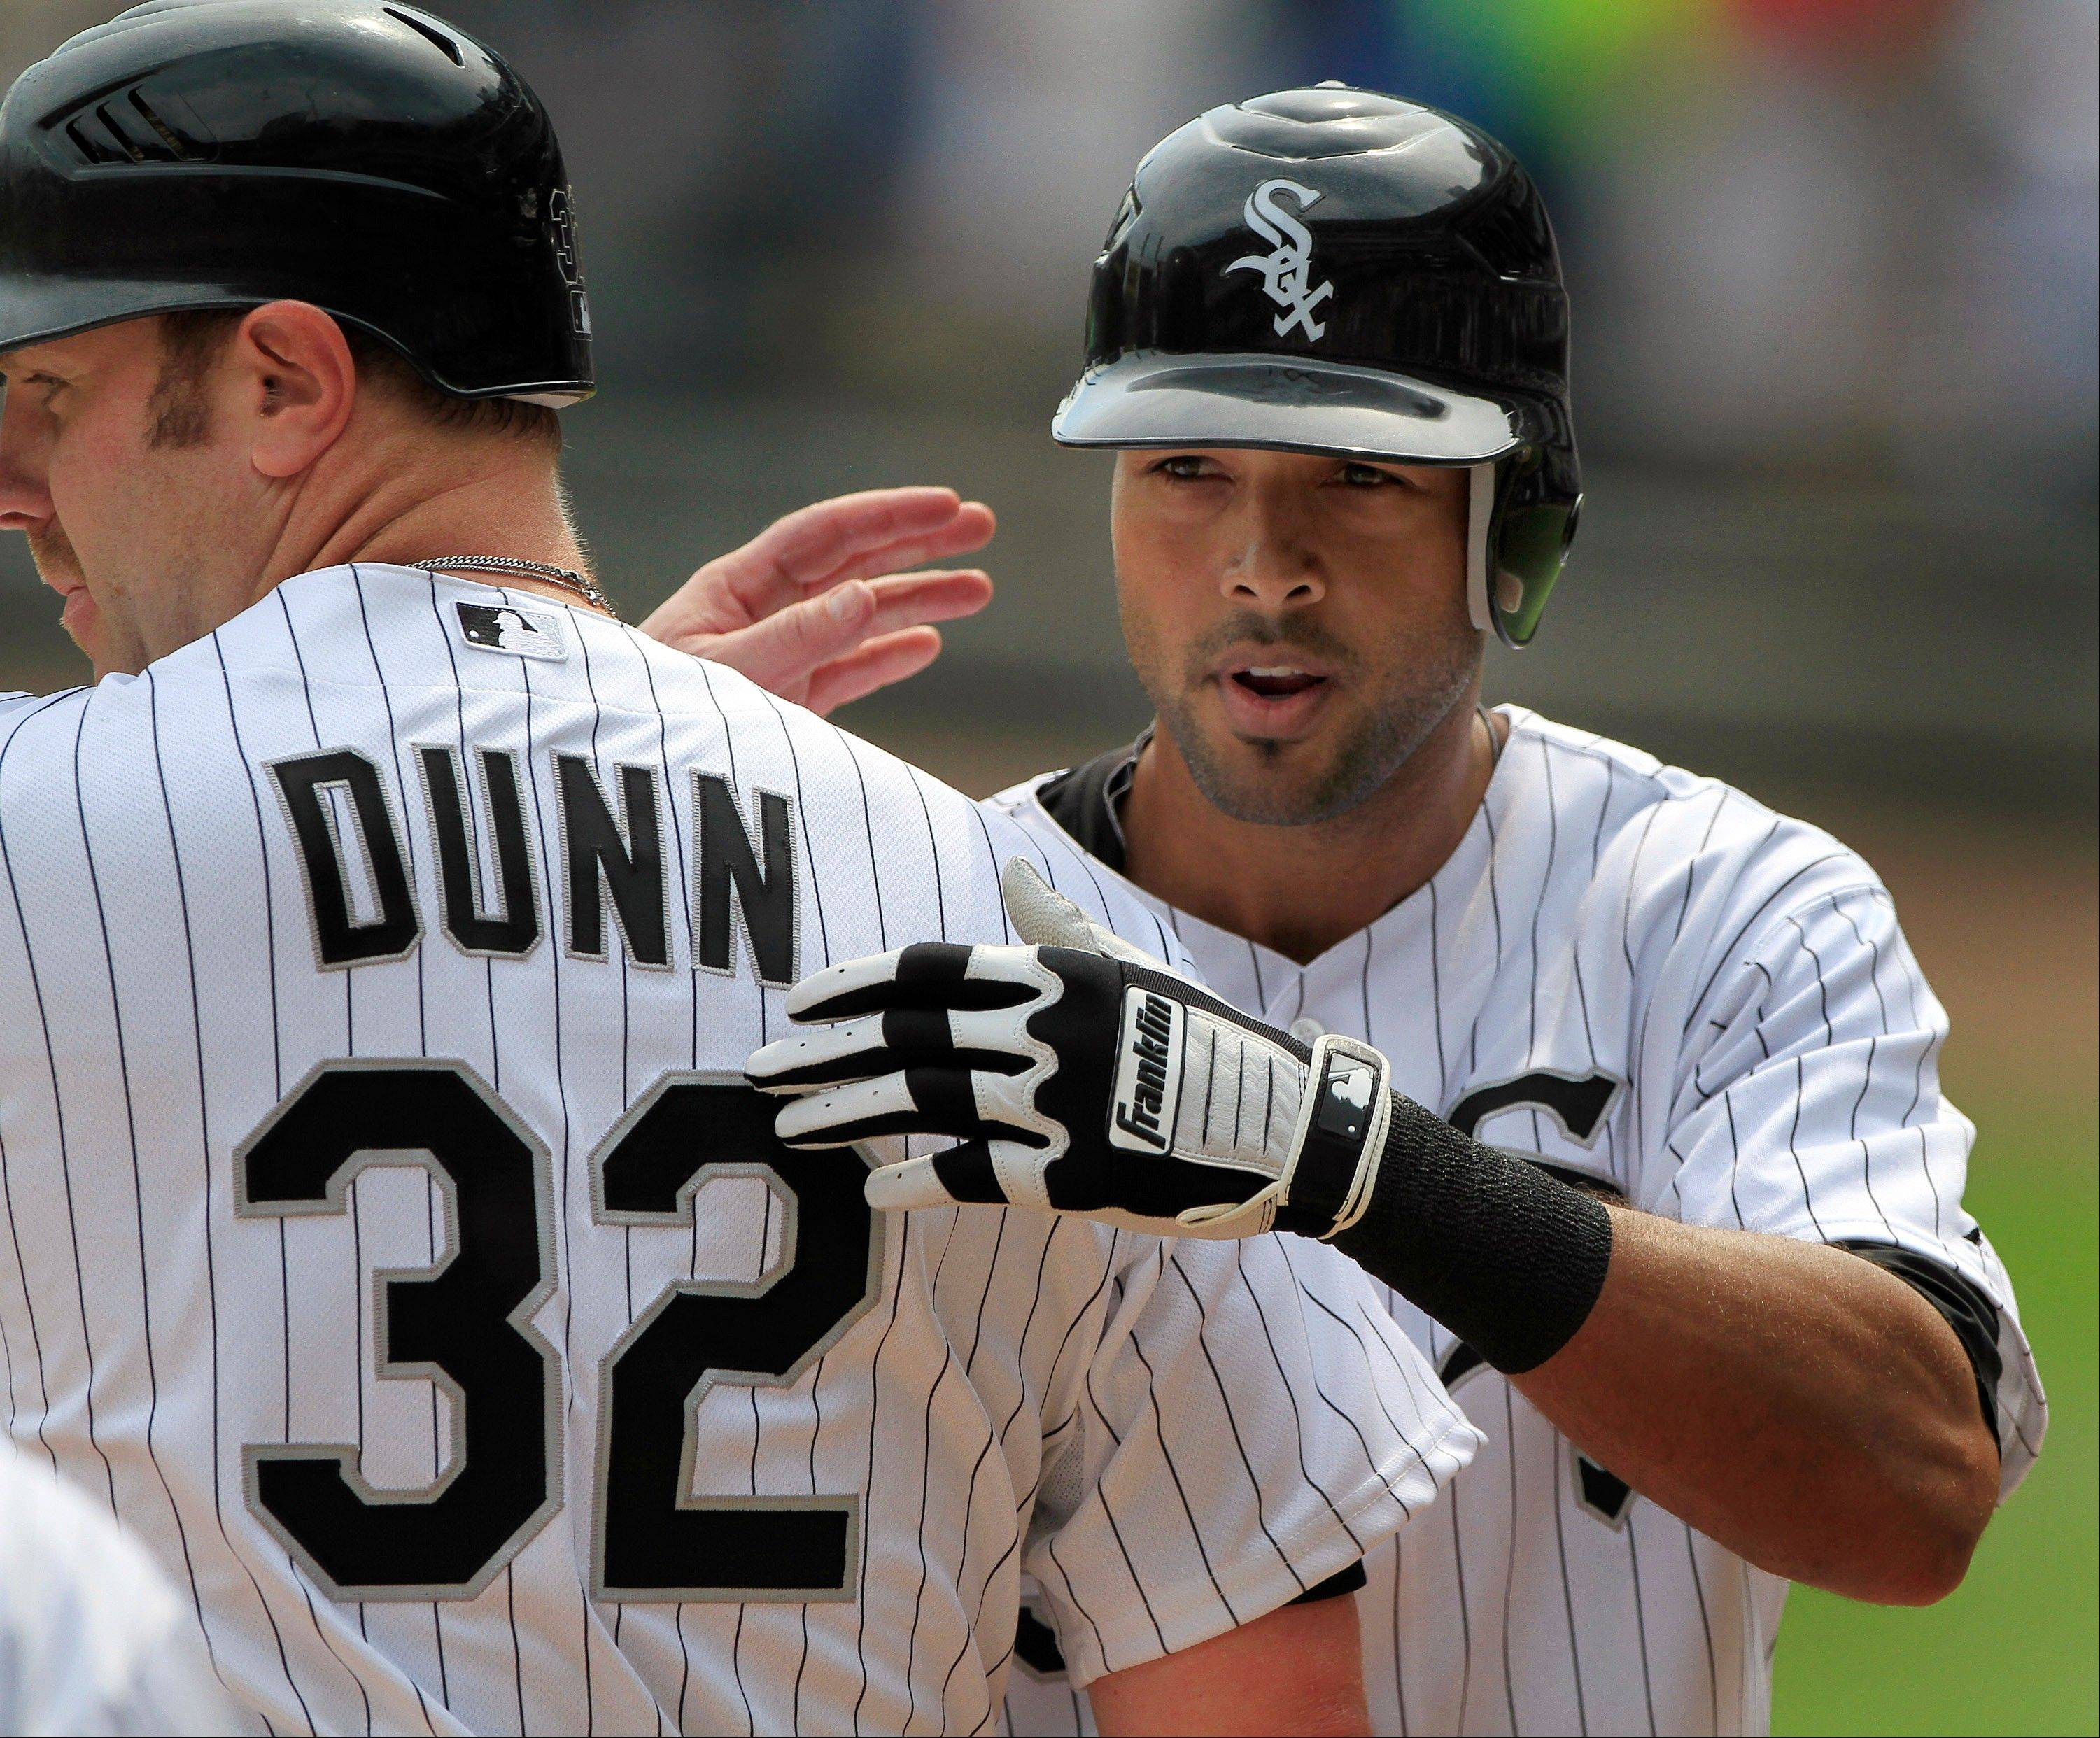 Chicago White Sox's Alex Rios, right, congratulated by teammate Adam Dunn after hitting a grand slam against the Minnesota Twins during the first inning of a baseball game, Wednesday, Sept. 5, 2012, in Chicago.